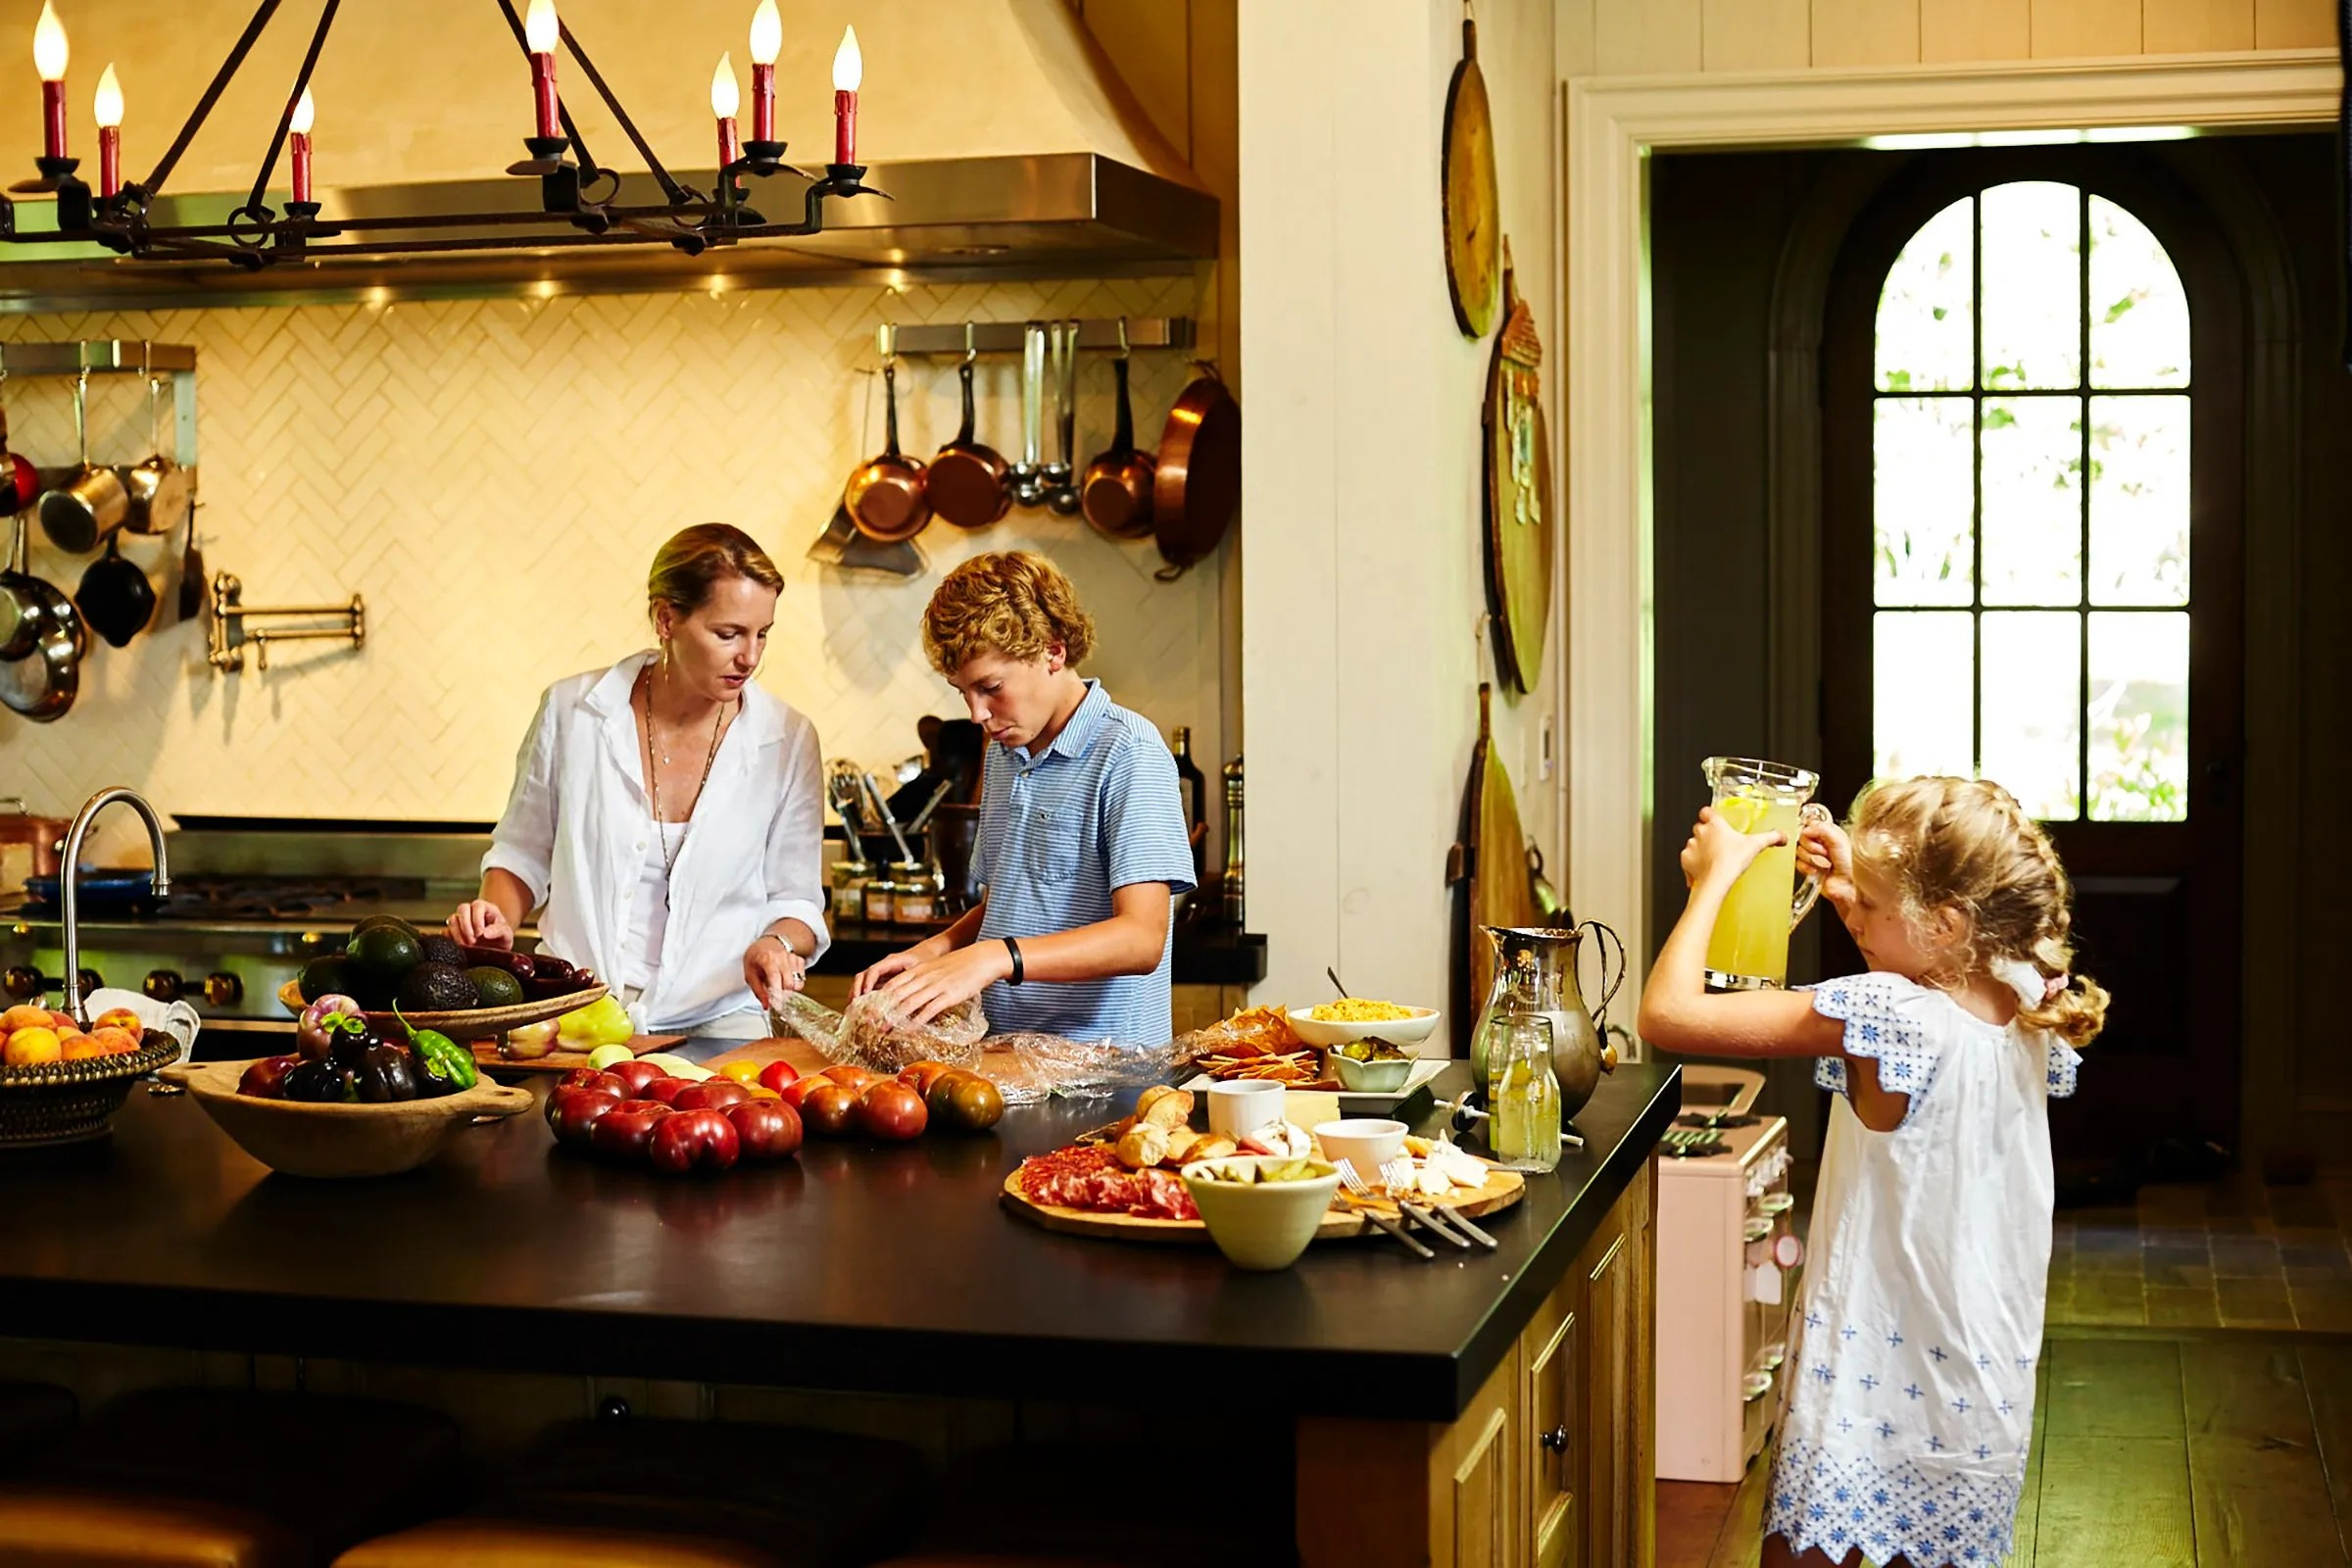 A Widow Takes The Helm At Legendary Blackberry Farm The